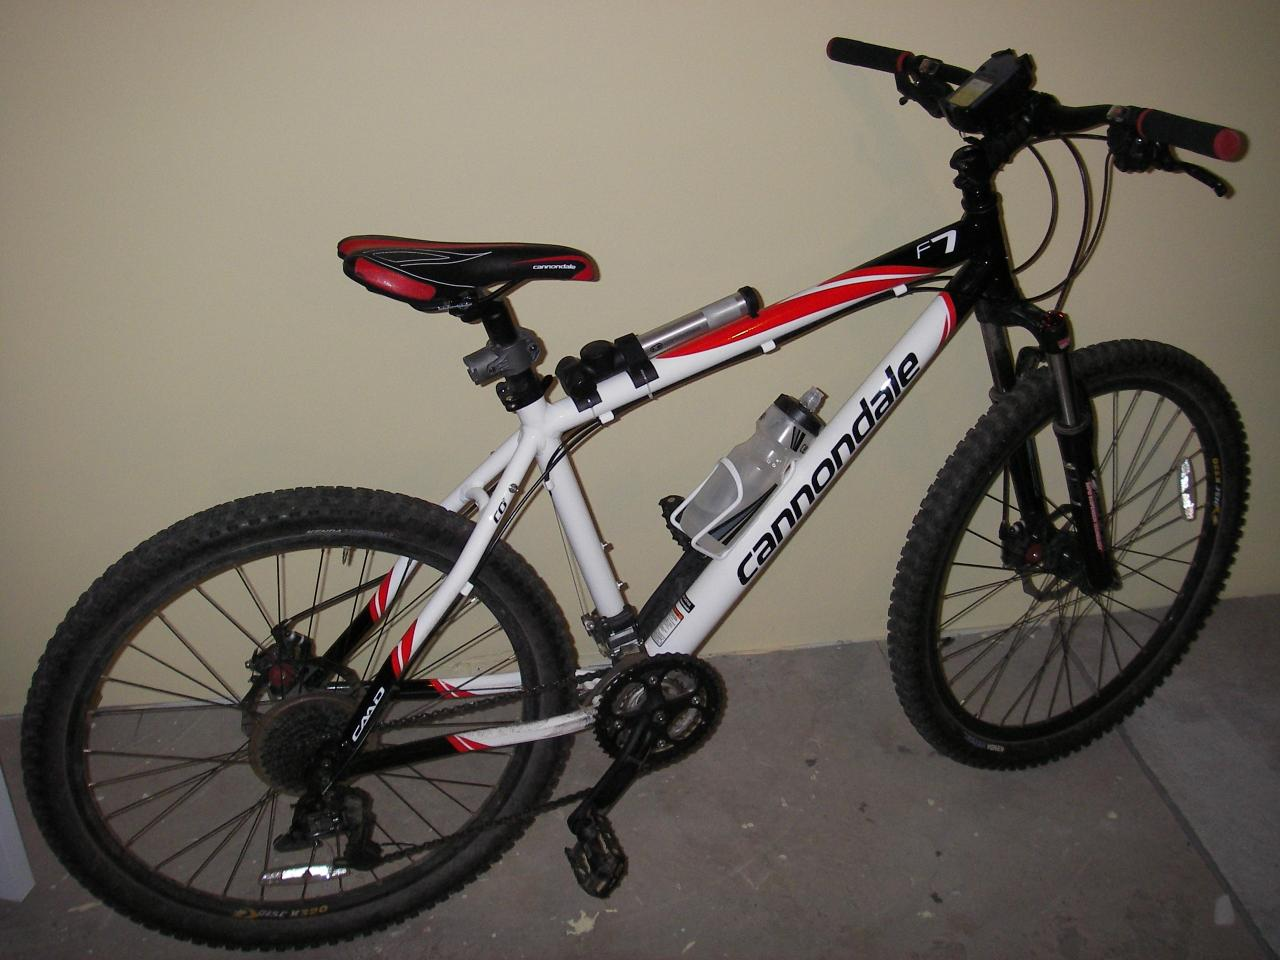 Bikes Cannondale Sale am new to mountian biking